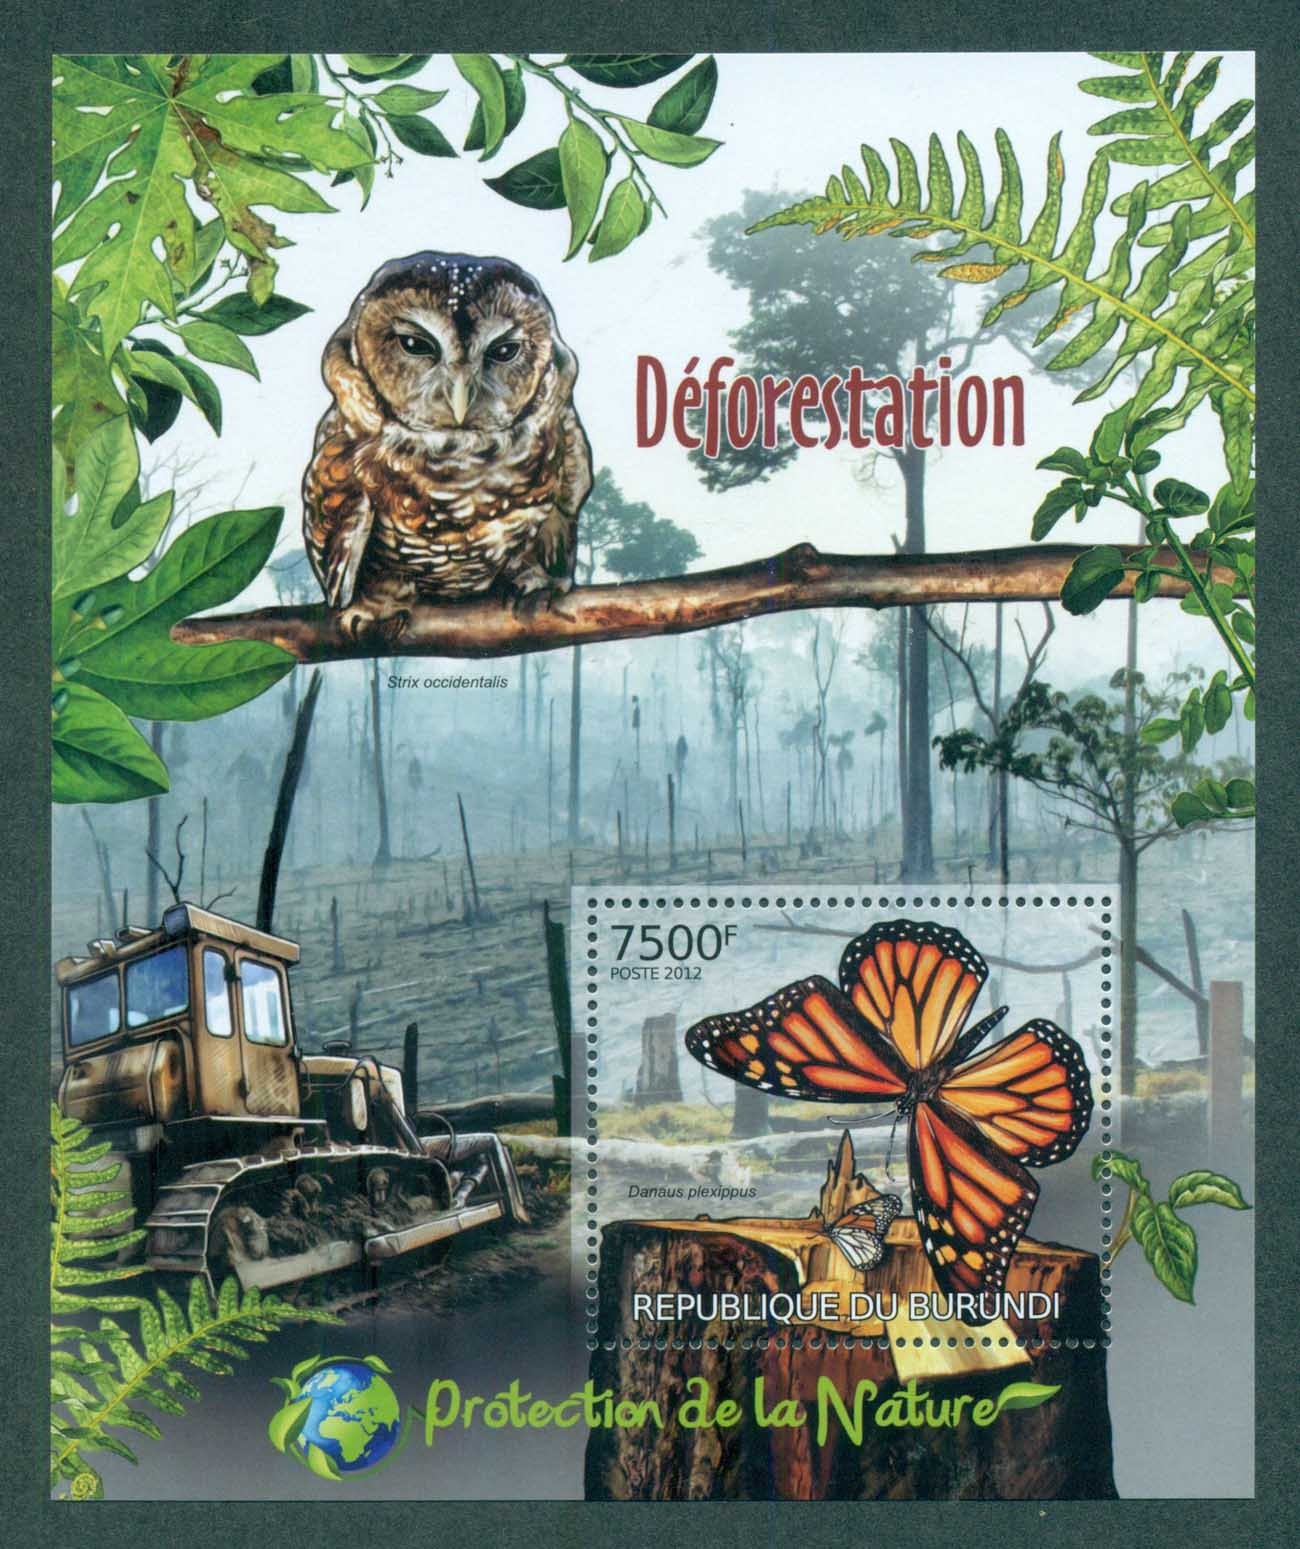 Burundi 2012 Insects, Butterfly,Owl, Tractor MS MUH BUR12411b